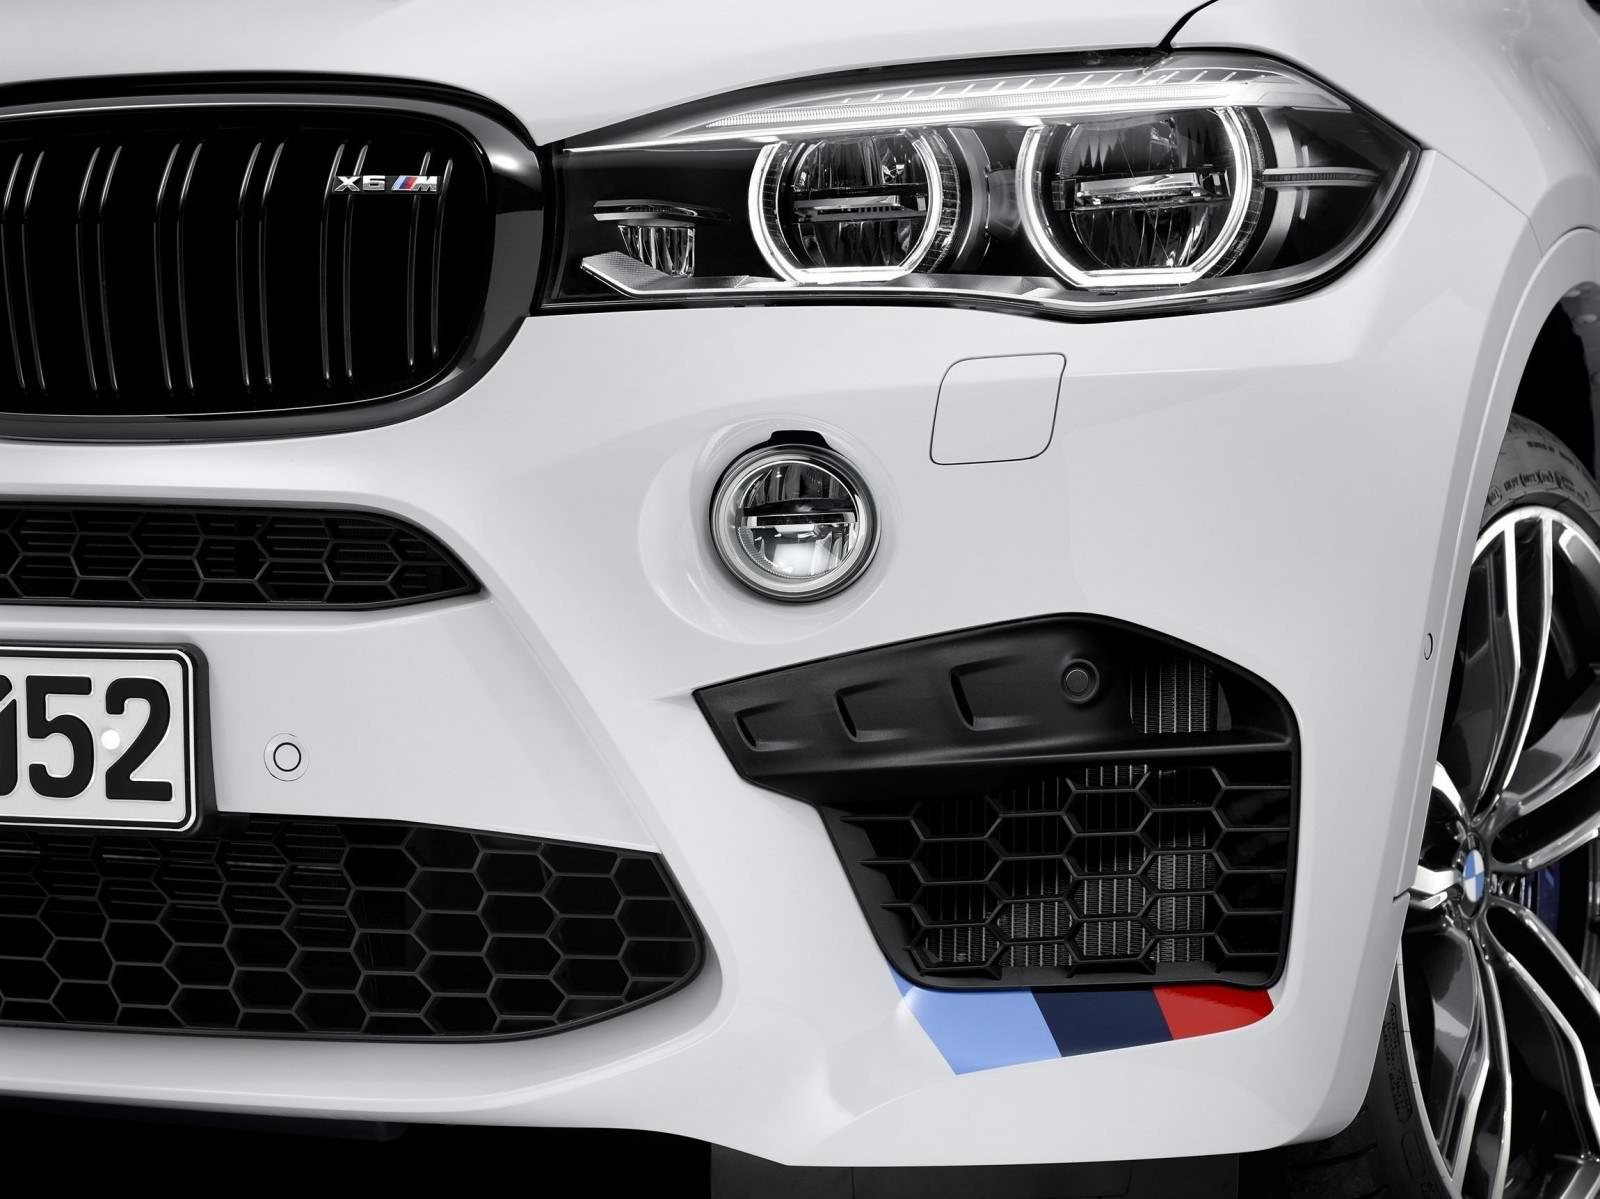 BMW M Performance Parts for 2015 X5M and X6M 13